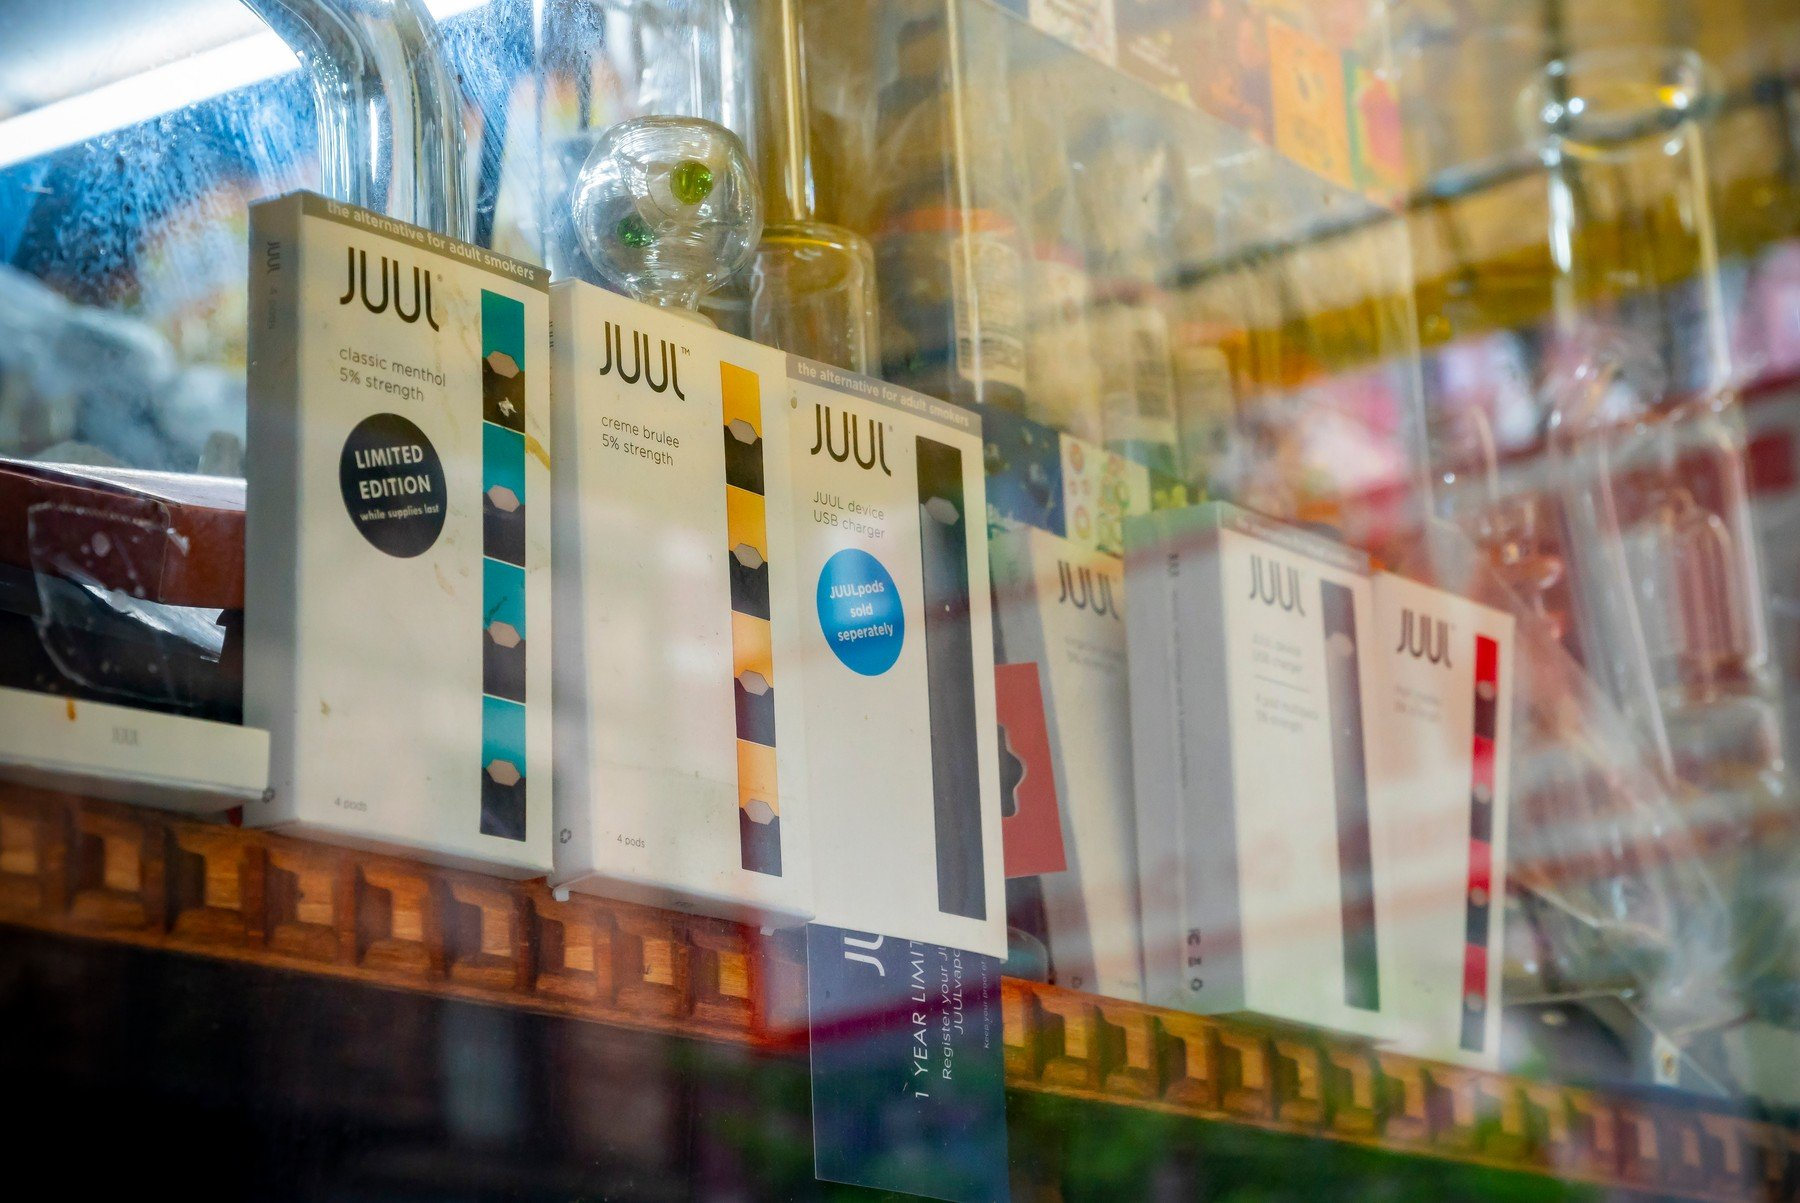 A selection of the popular Juul brand vaping supplies on display in the window of a vaping store in New York on Sunday, May 13, 2018. (Â, Image: 371659099, License: Rights-managed, Restrictions: , Model Release: no, Credit line: Profimedia, SIPA USA